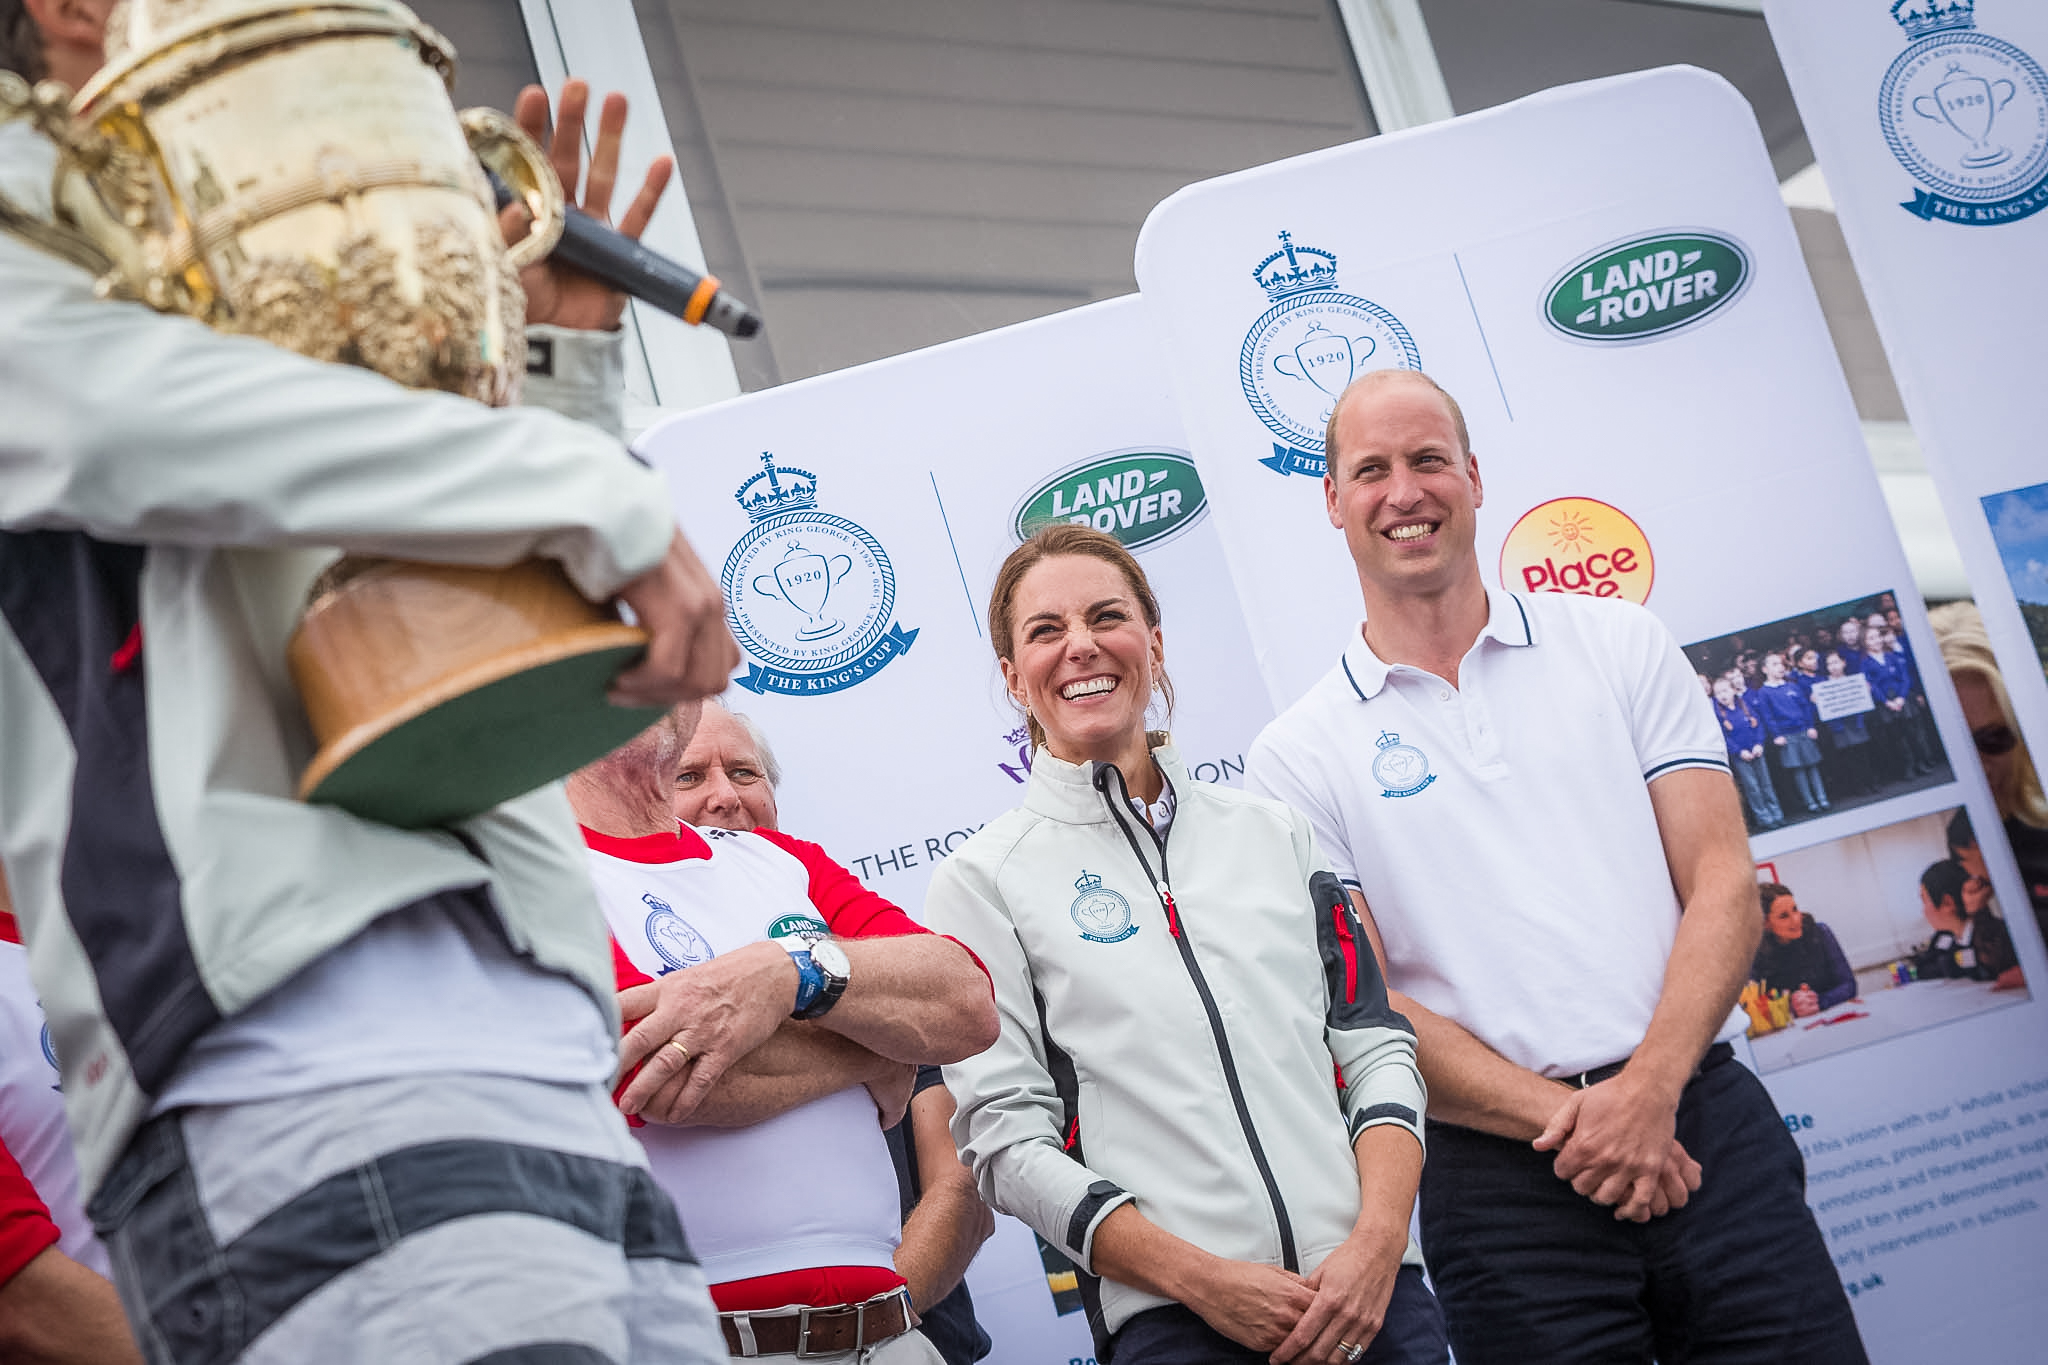 The Duke and Duchess of Cambridge watch as Bear Grylls and Tusk are awarded The King's Cup trophy.